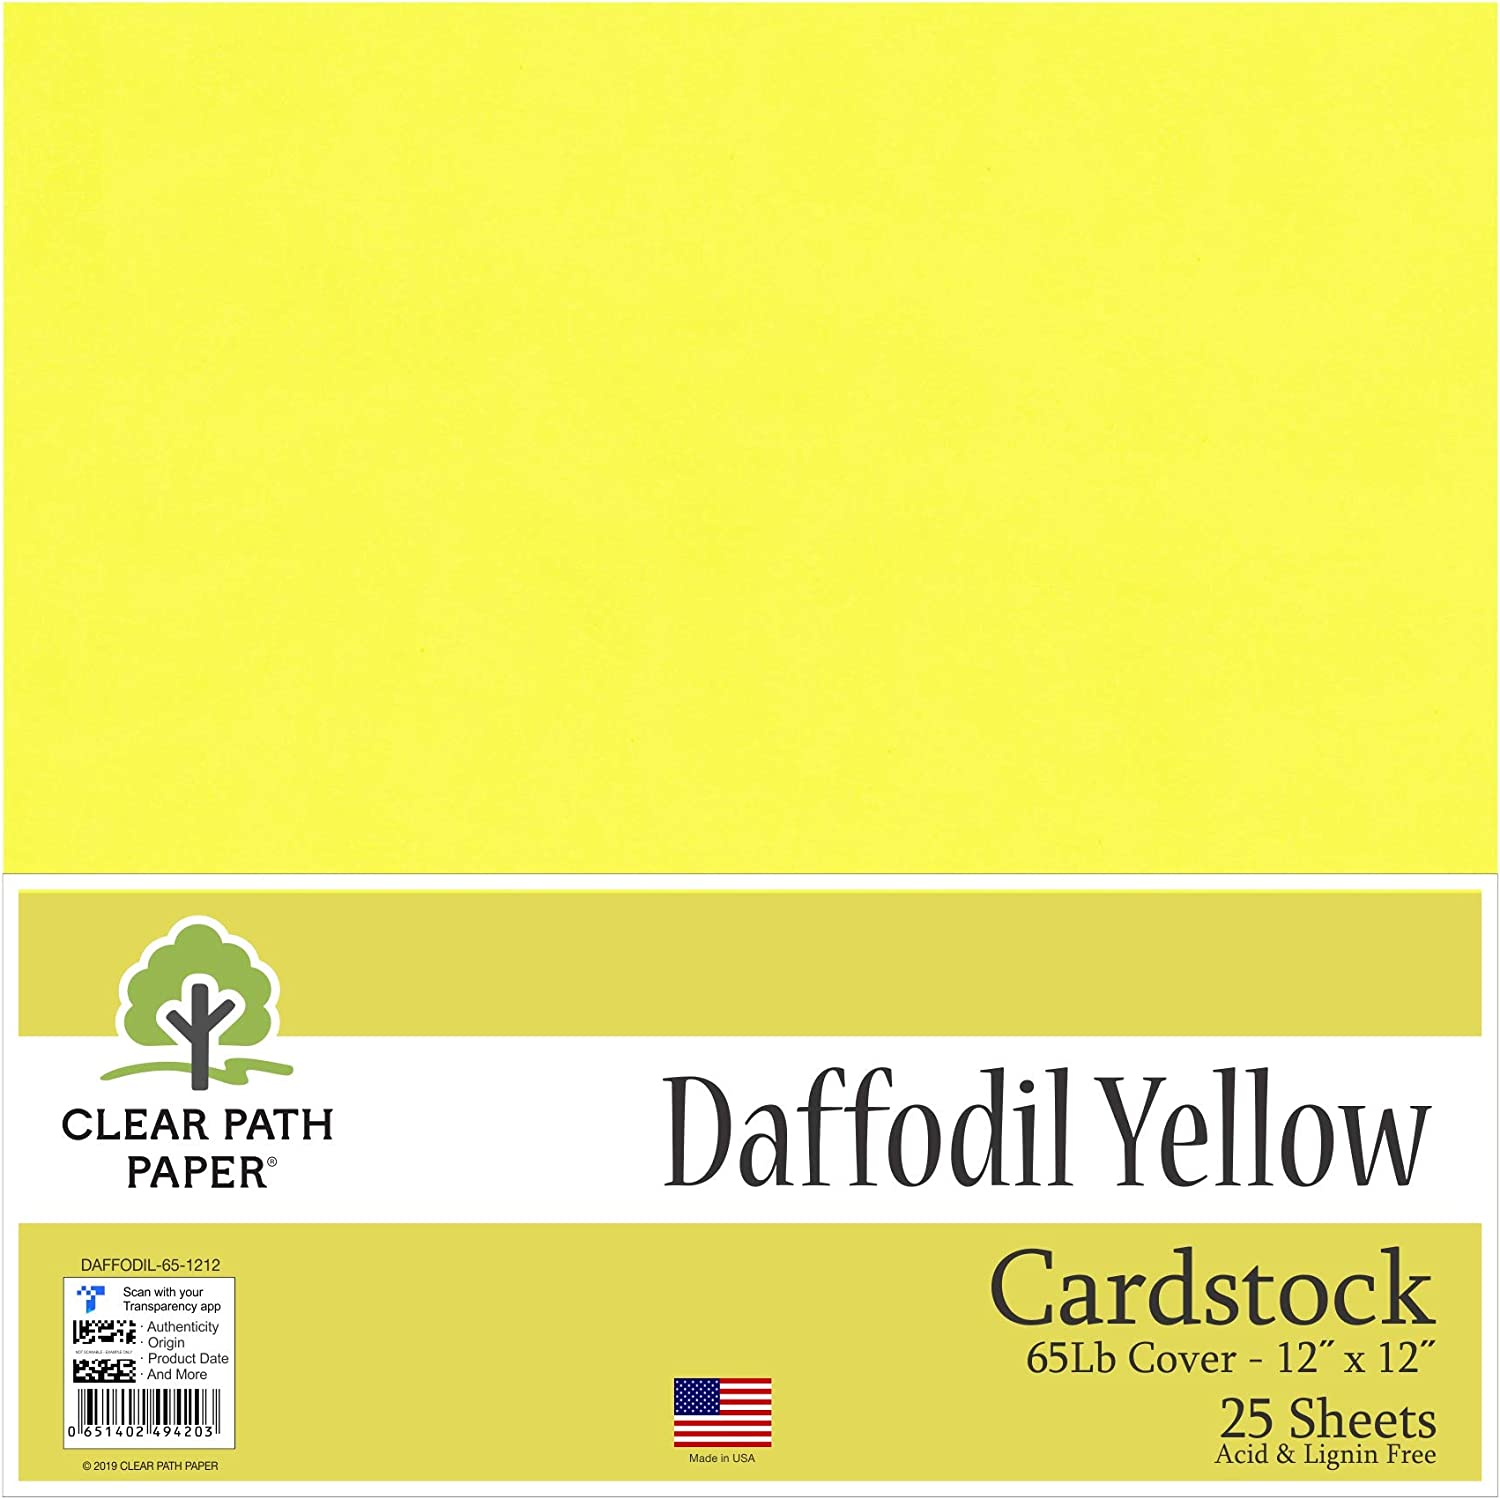 25 Sheets Daffodil Yellow Cardstock 12 x 12 inch 65Lb Cover